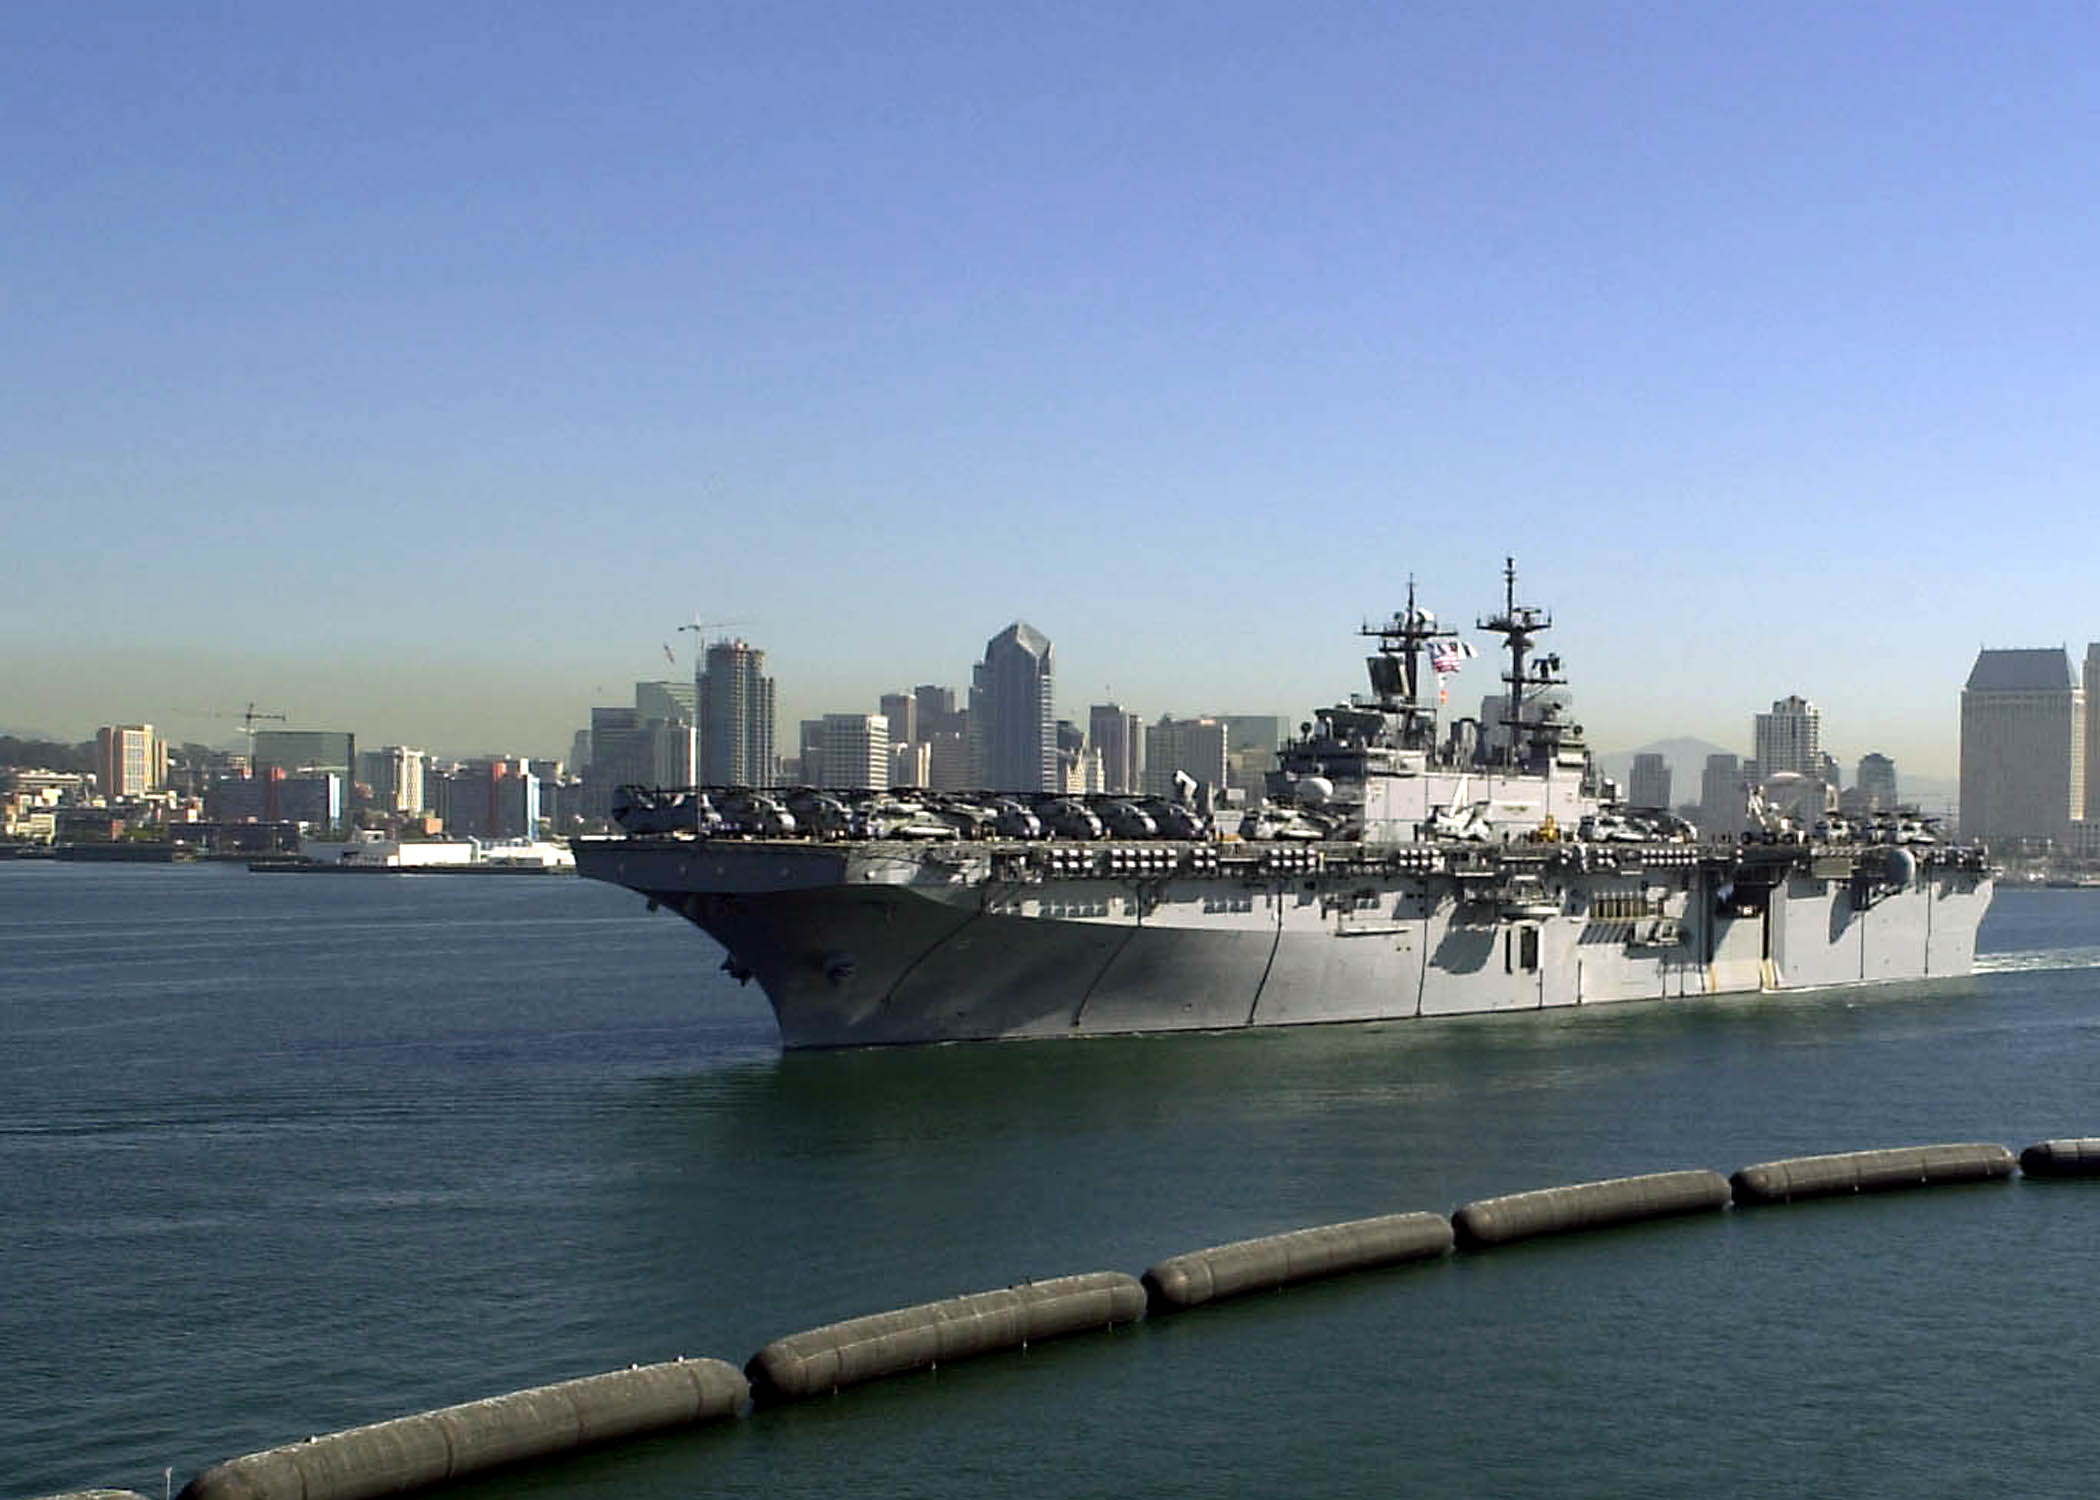 uss boxer  lhd 4  departs san diego  calif   on a